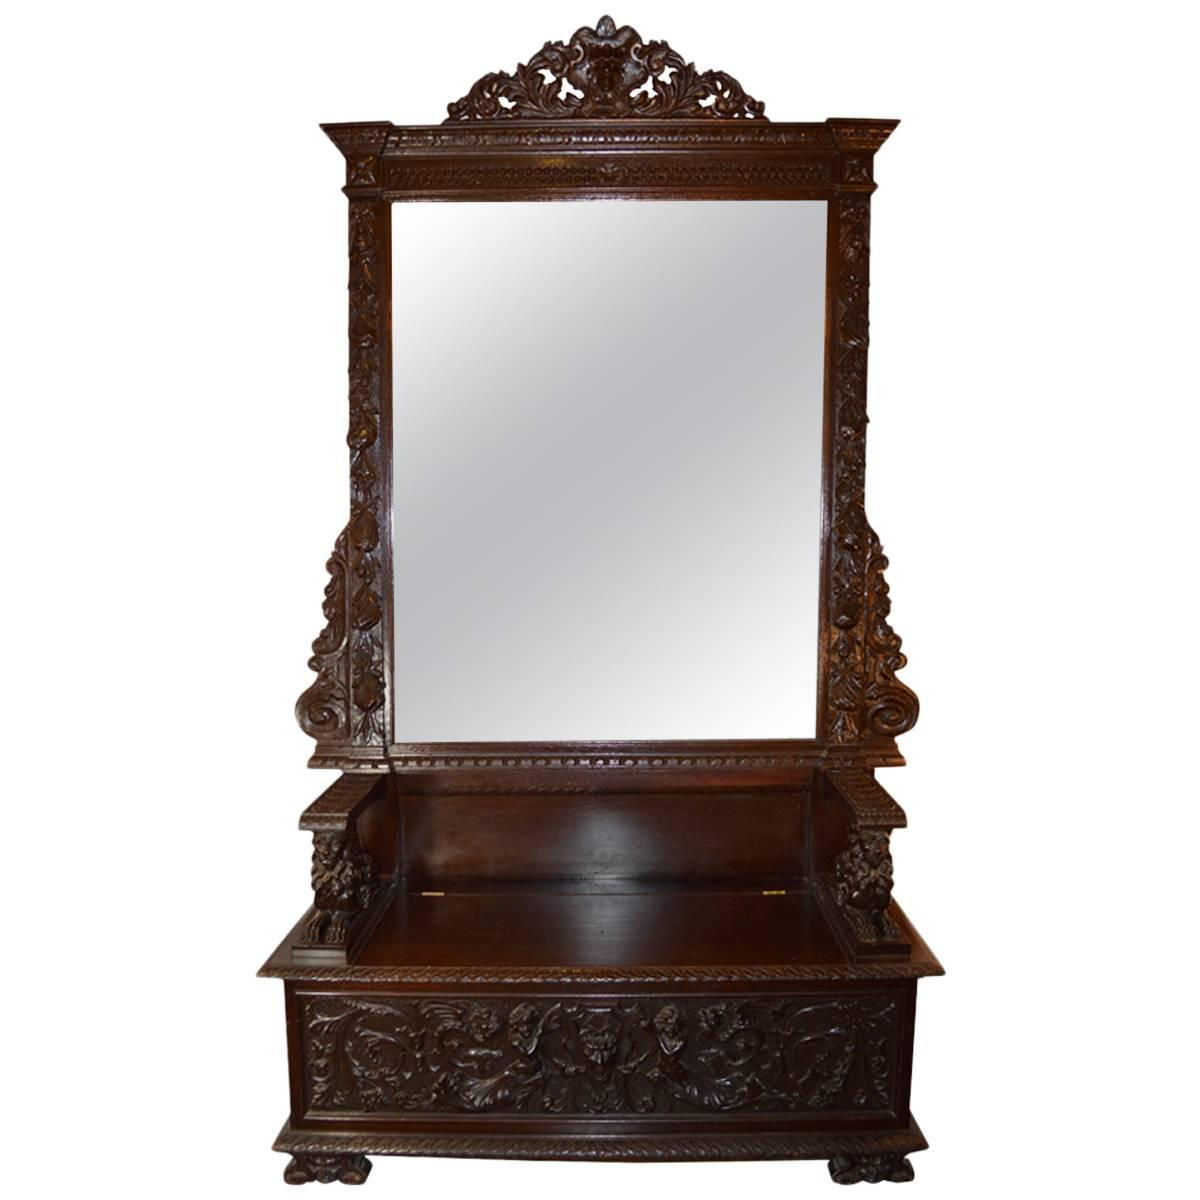 Antique Italian Hall Bench With Mirror For Sale At 1stdibs